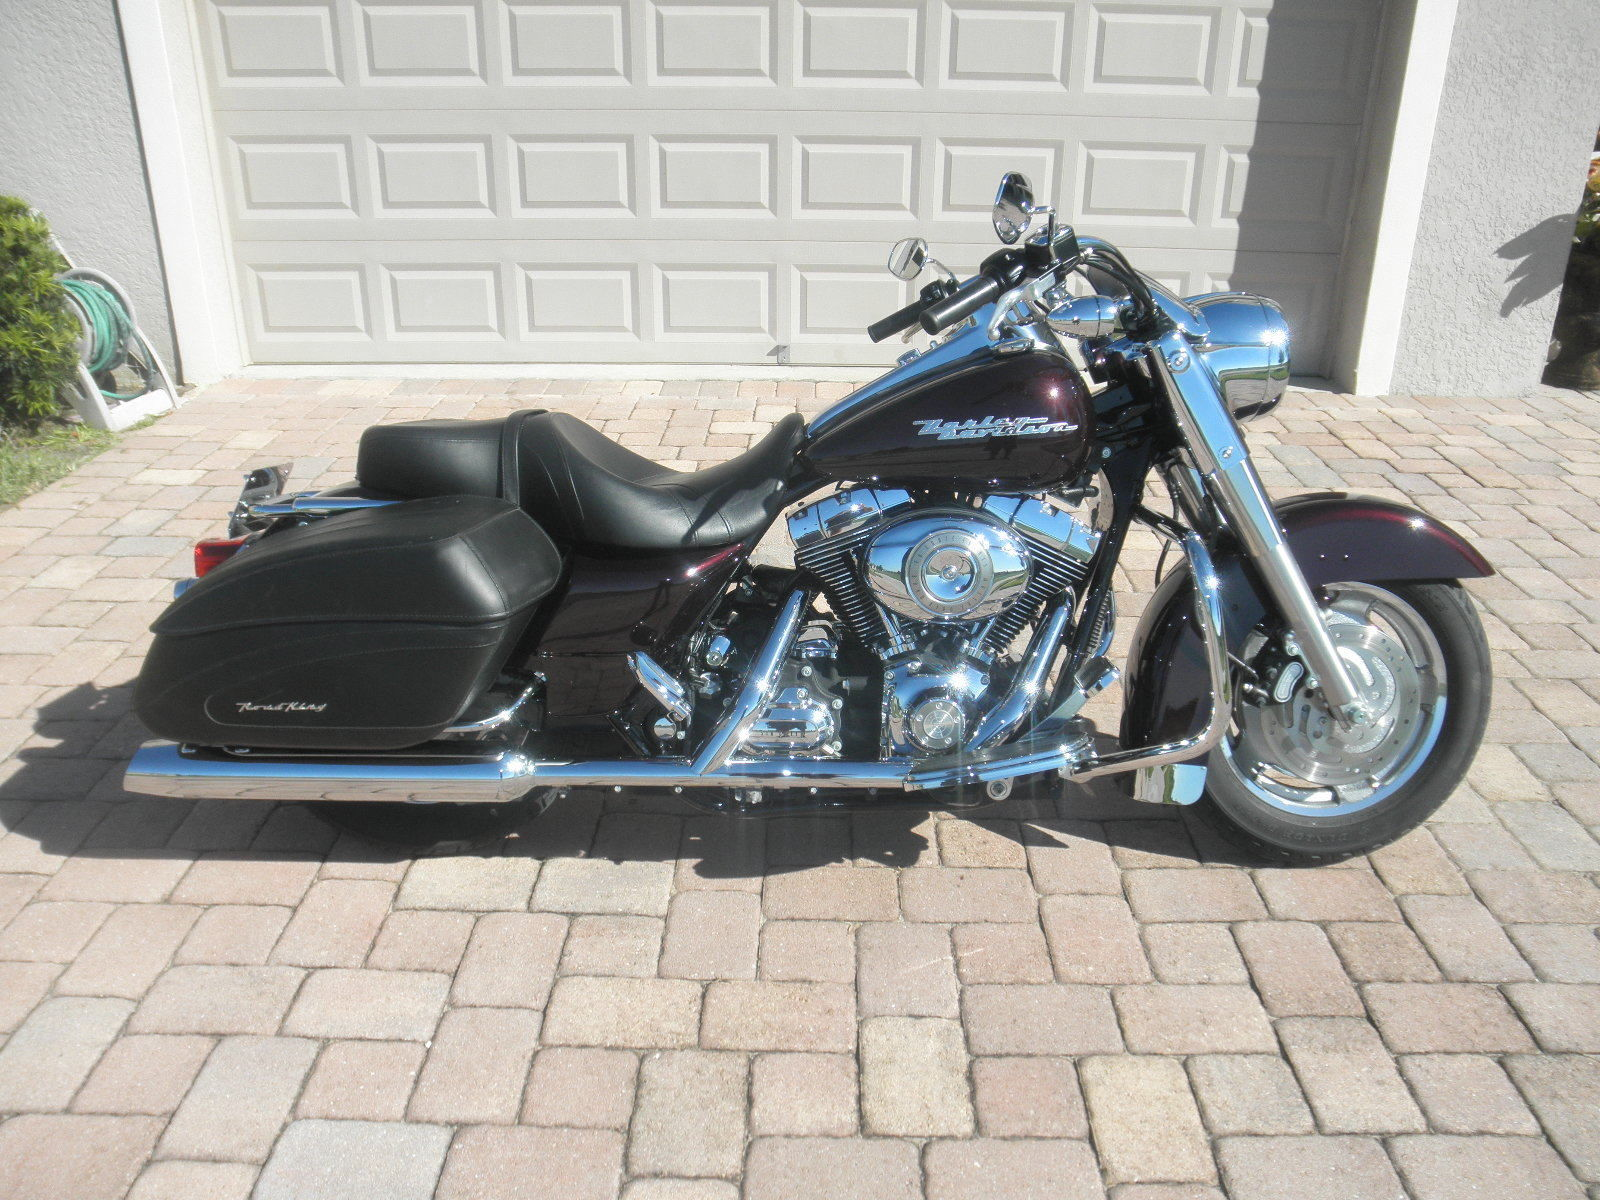 2007 harley davidson road king custom flhrs 11503 miles black cherry pearl. Black Bedroom Furniture Sets. Home Design Ideas